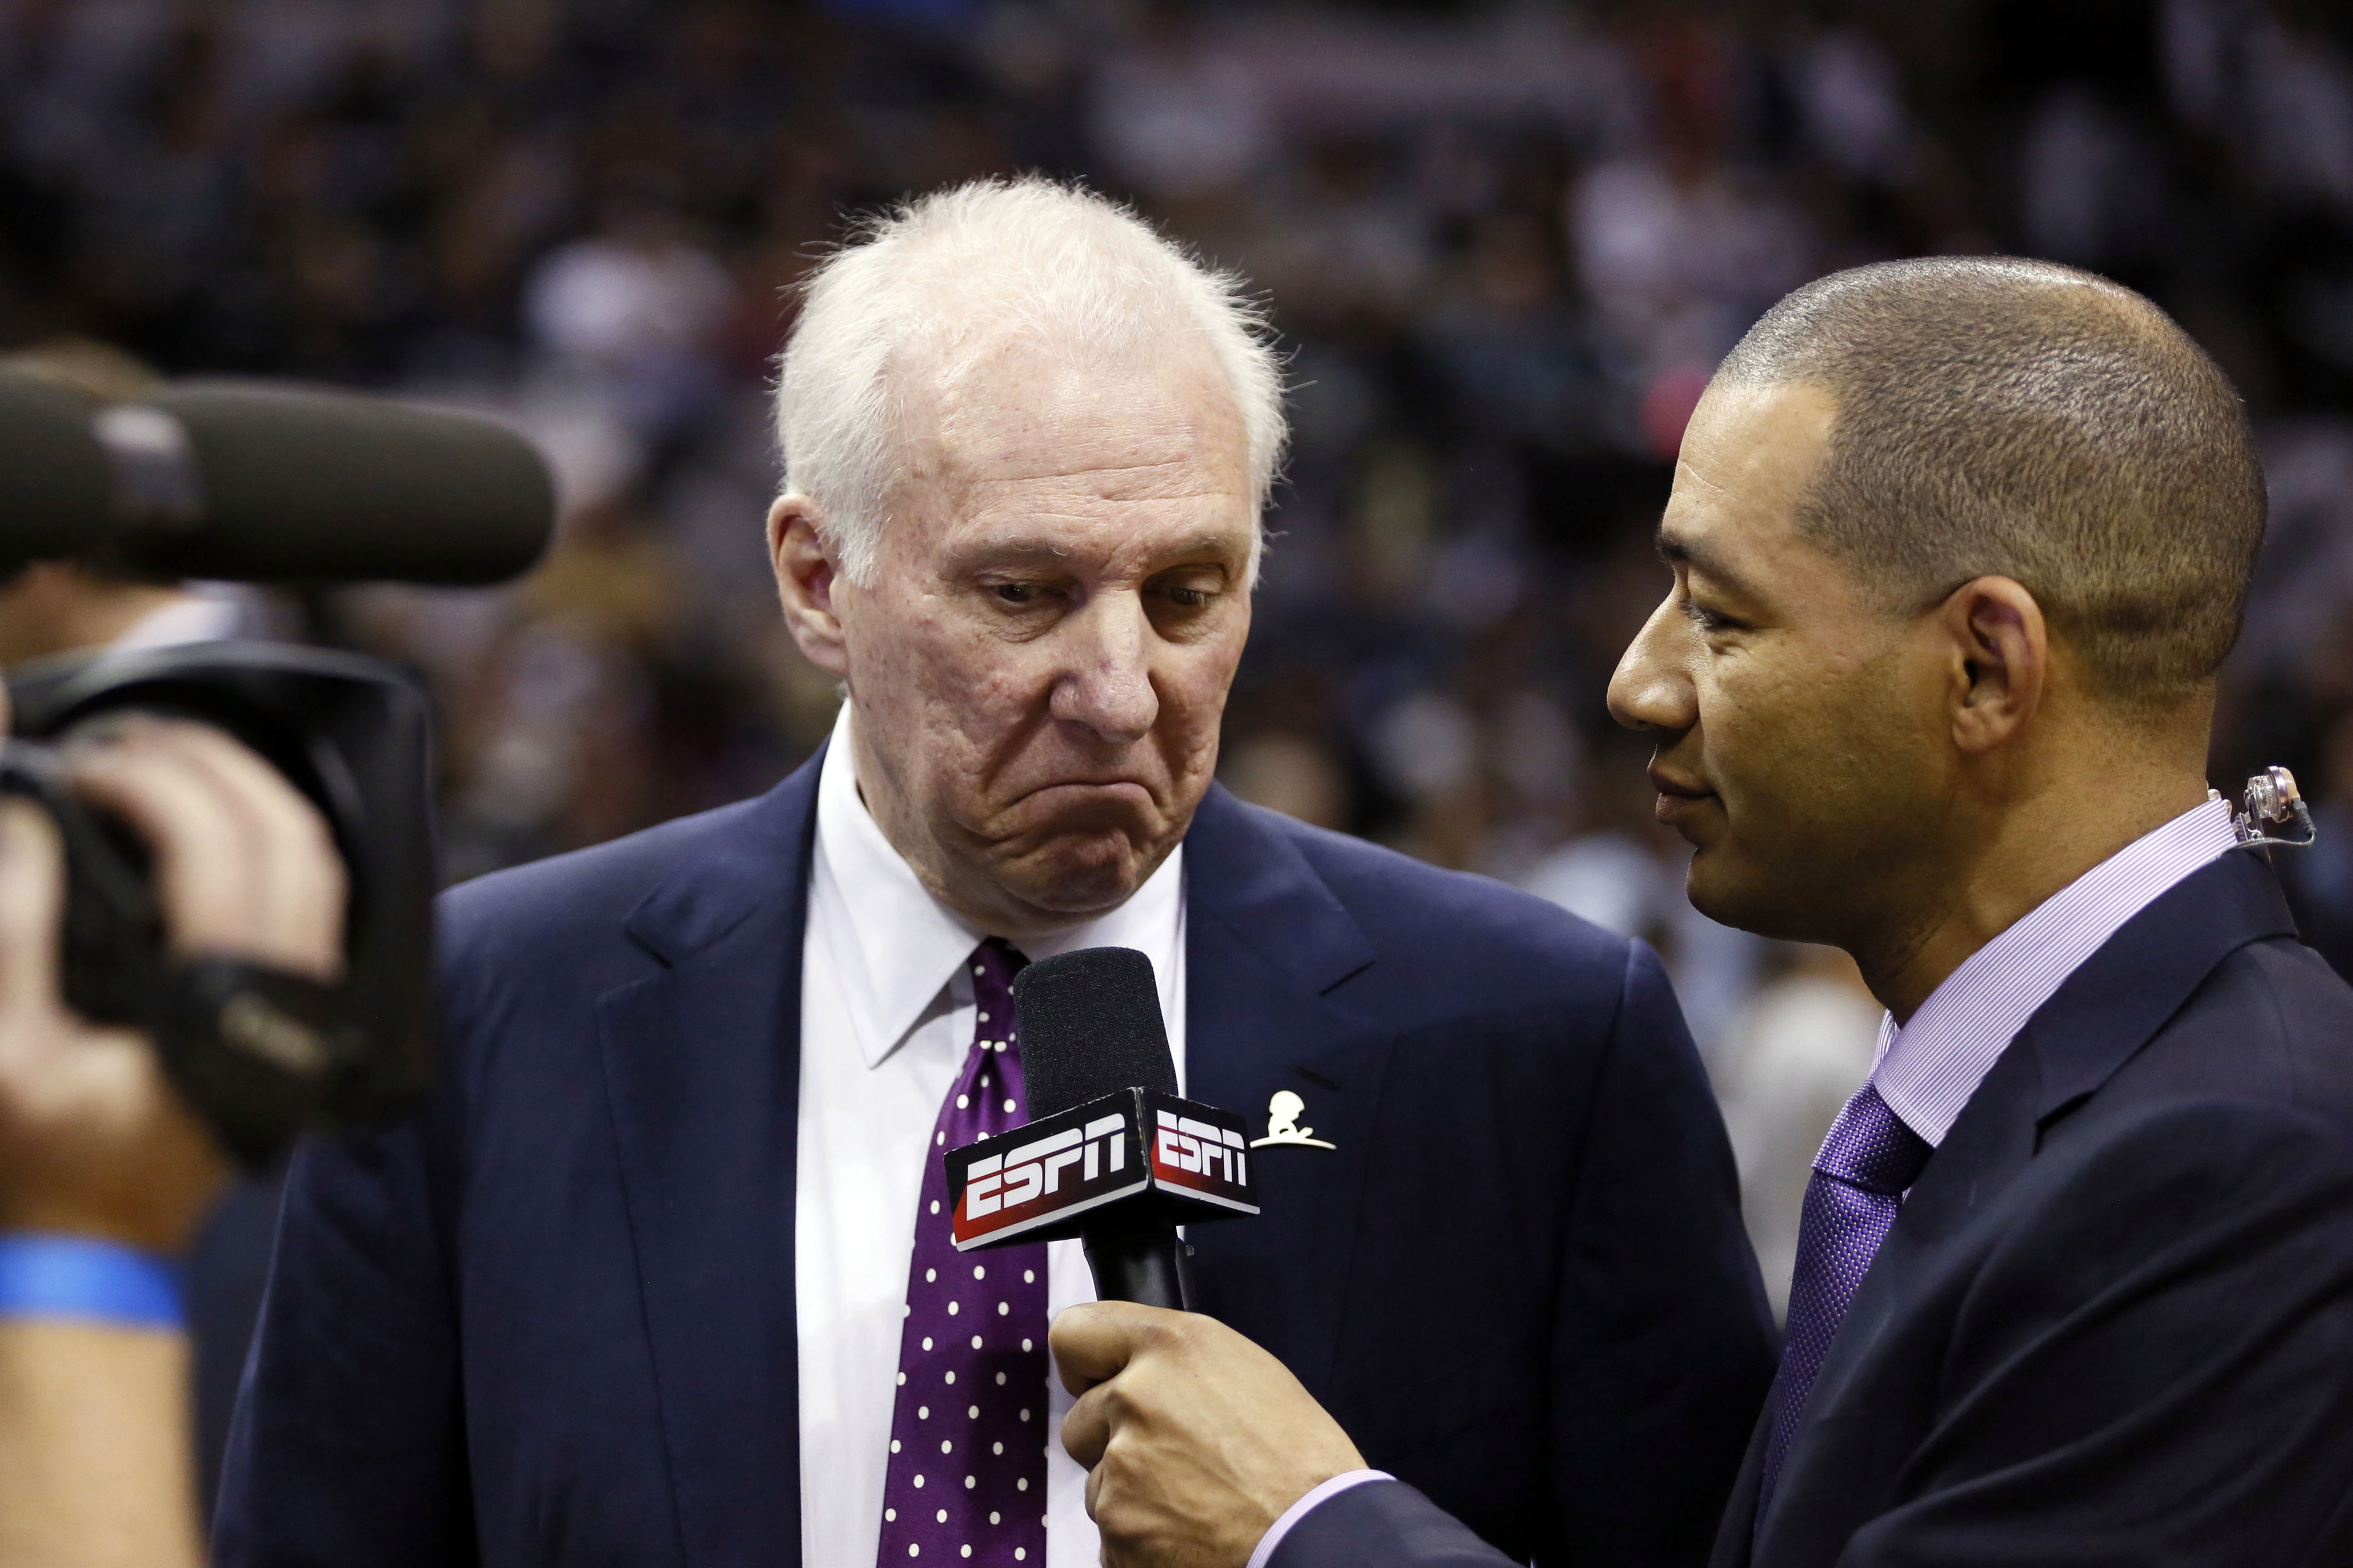 NBA closing in on new $2 billion TV deal with ESPN, Turner